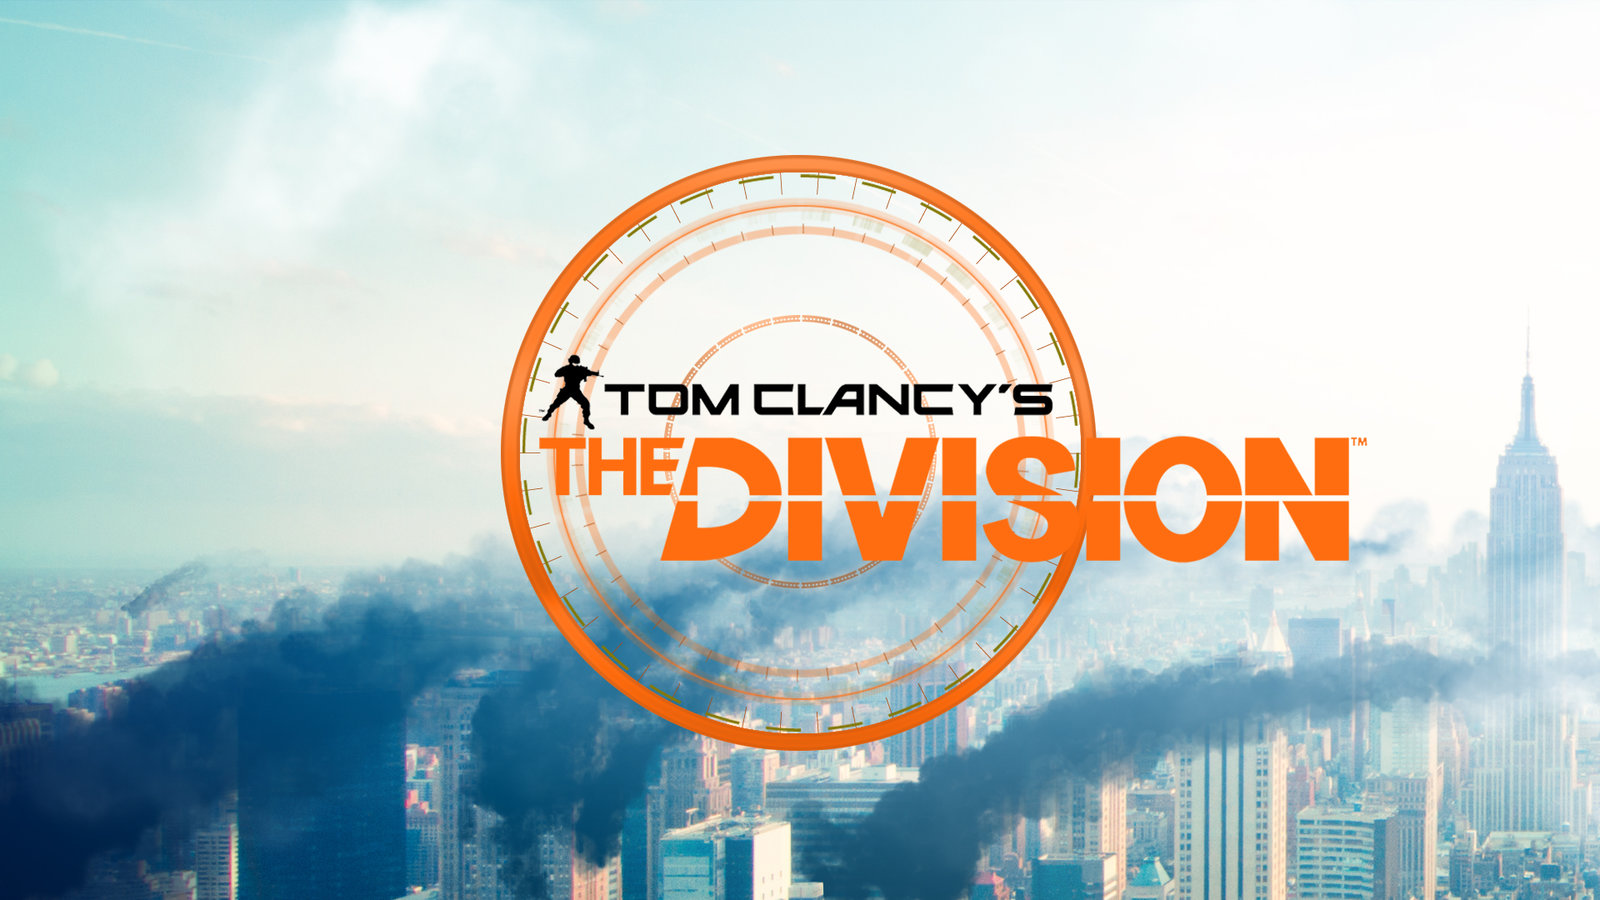 tom_clancy_s_the_division_wallpaper_3_by_valencygraphics-d90m3bf